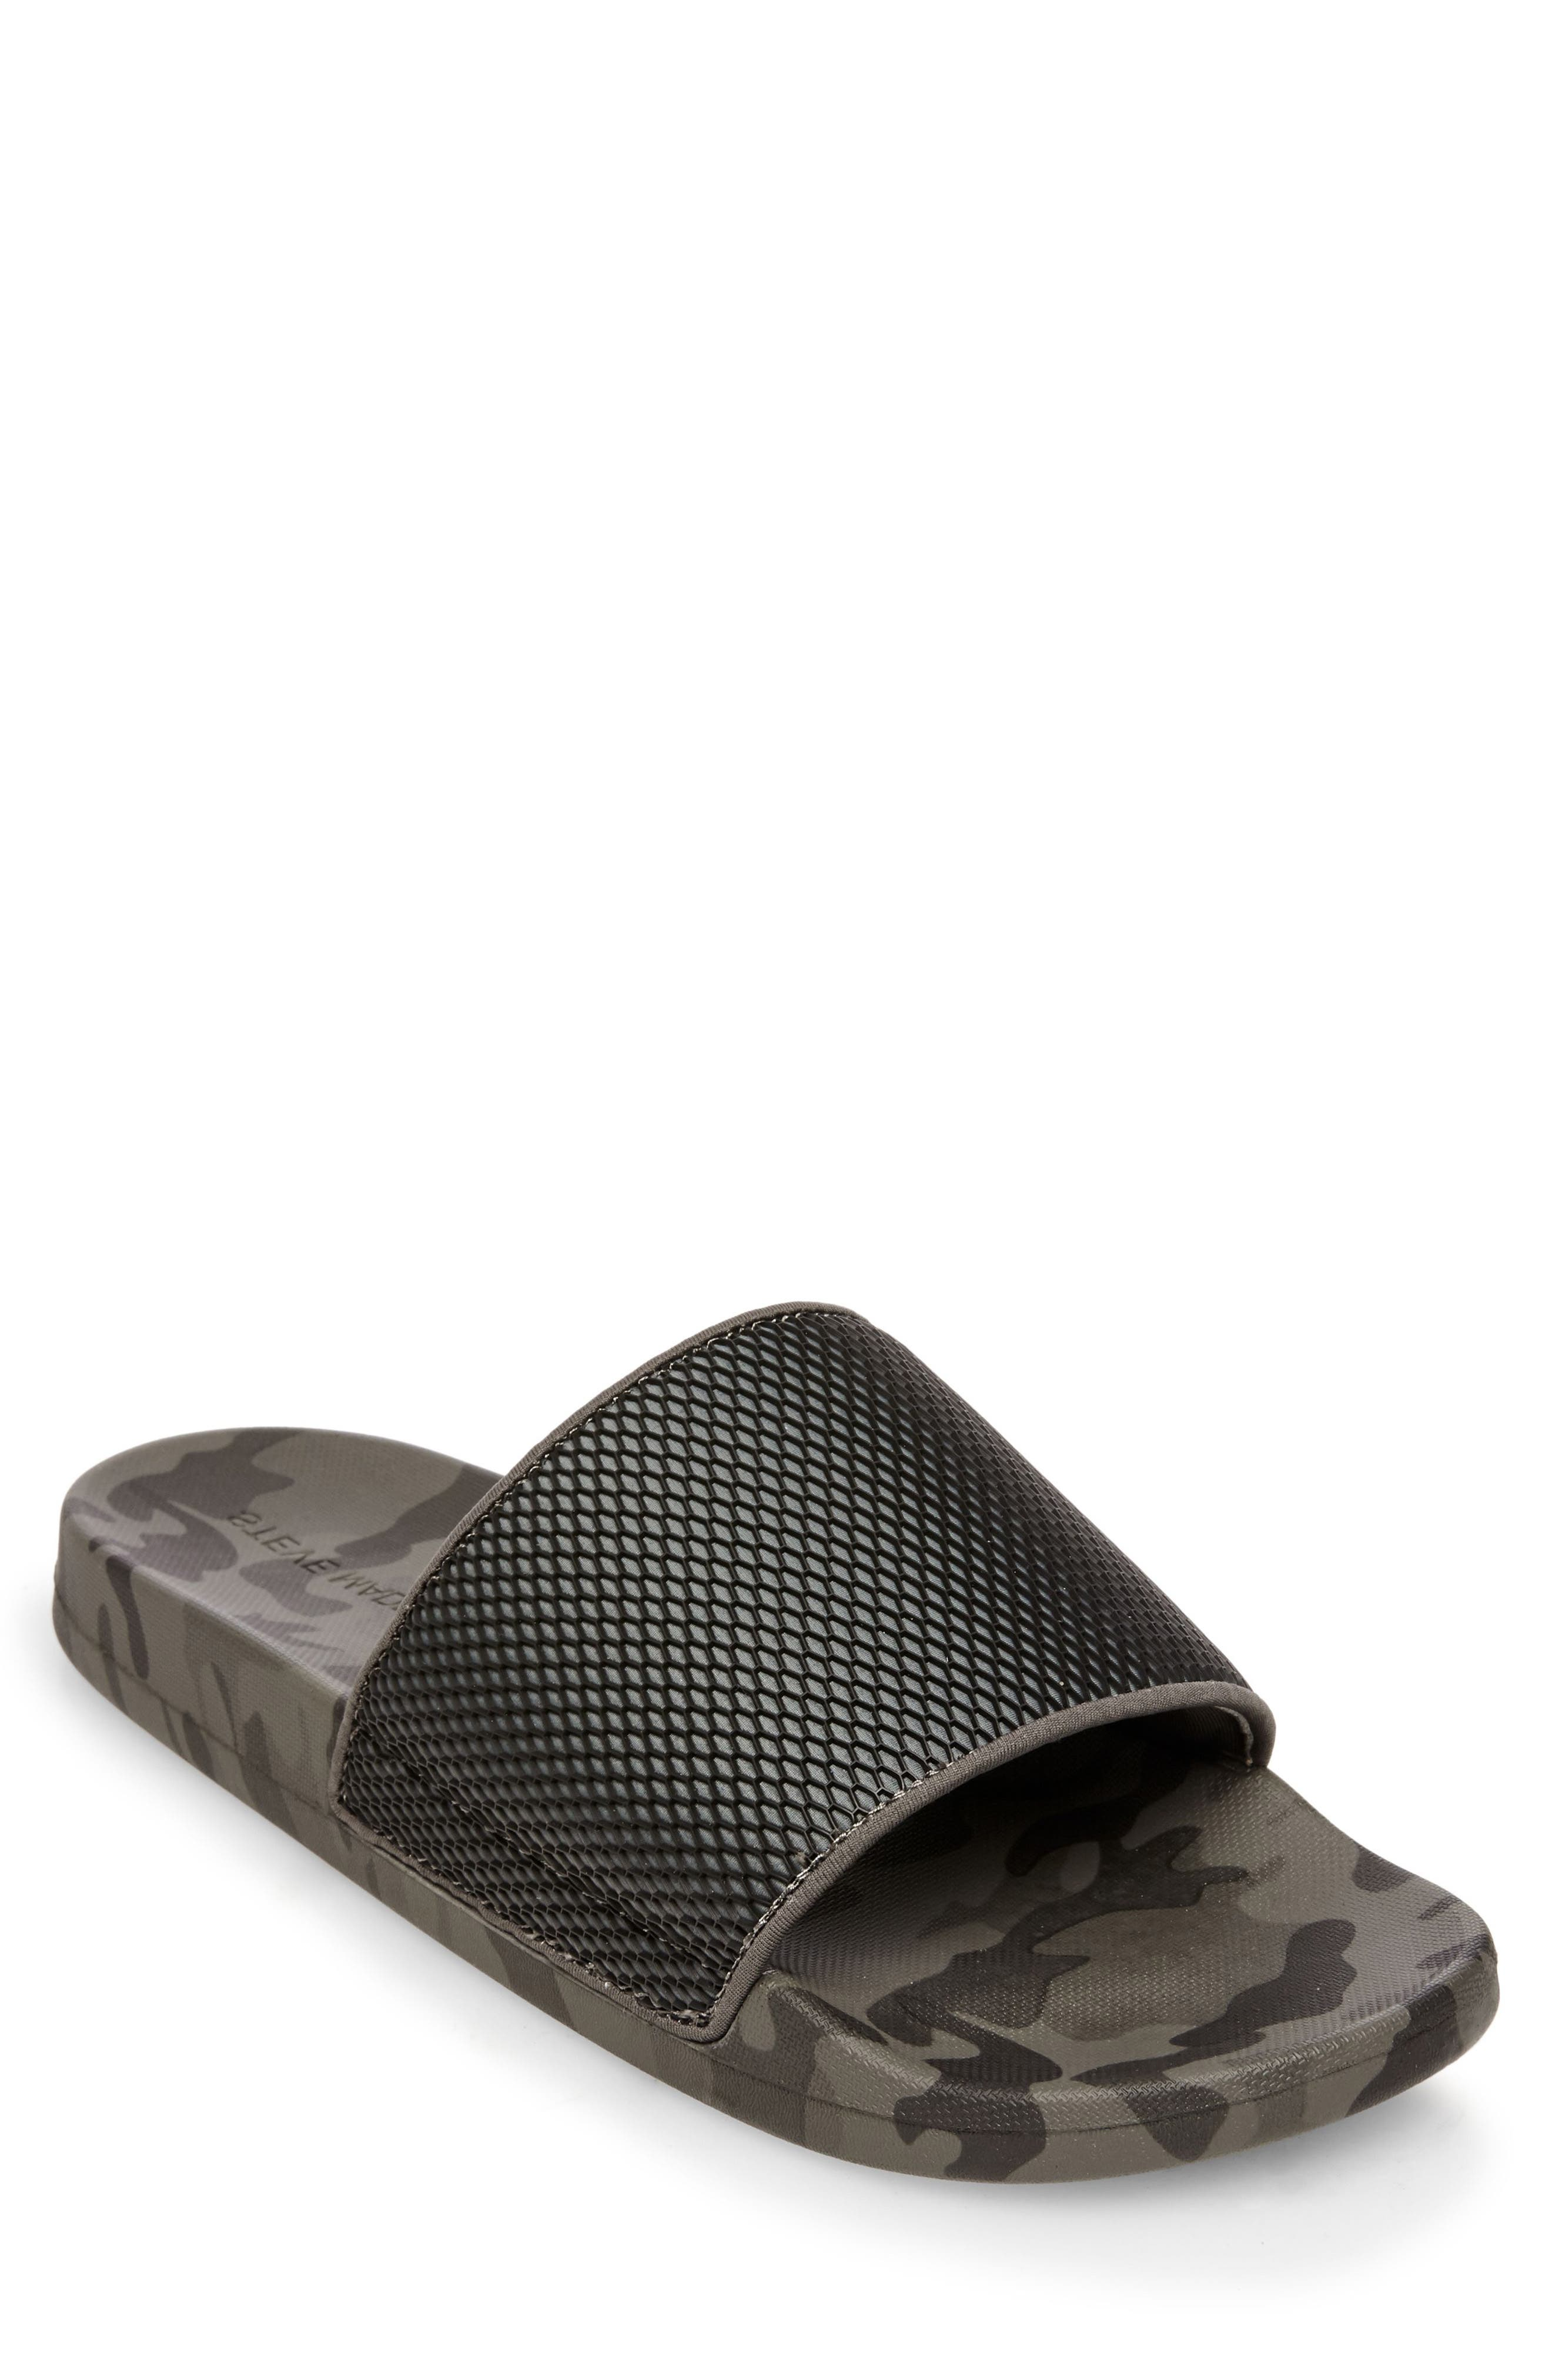 Steve Madden Seabees Textured Slide Sandal (Men)